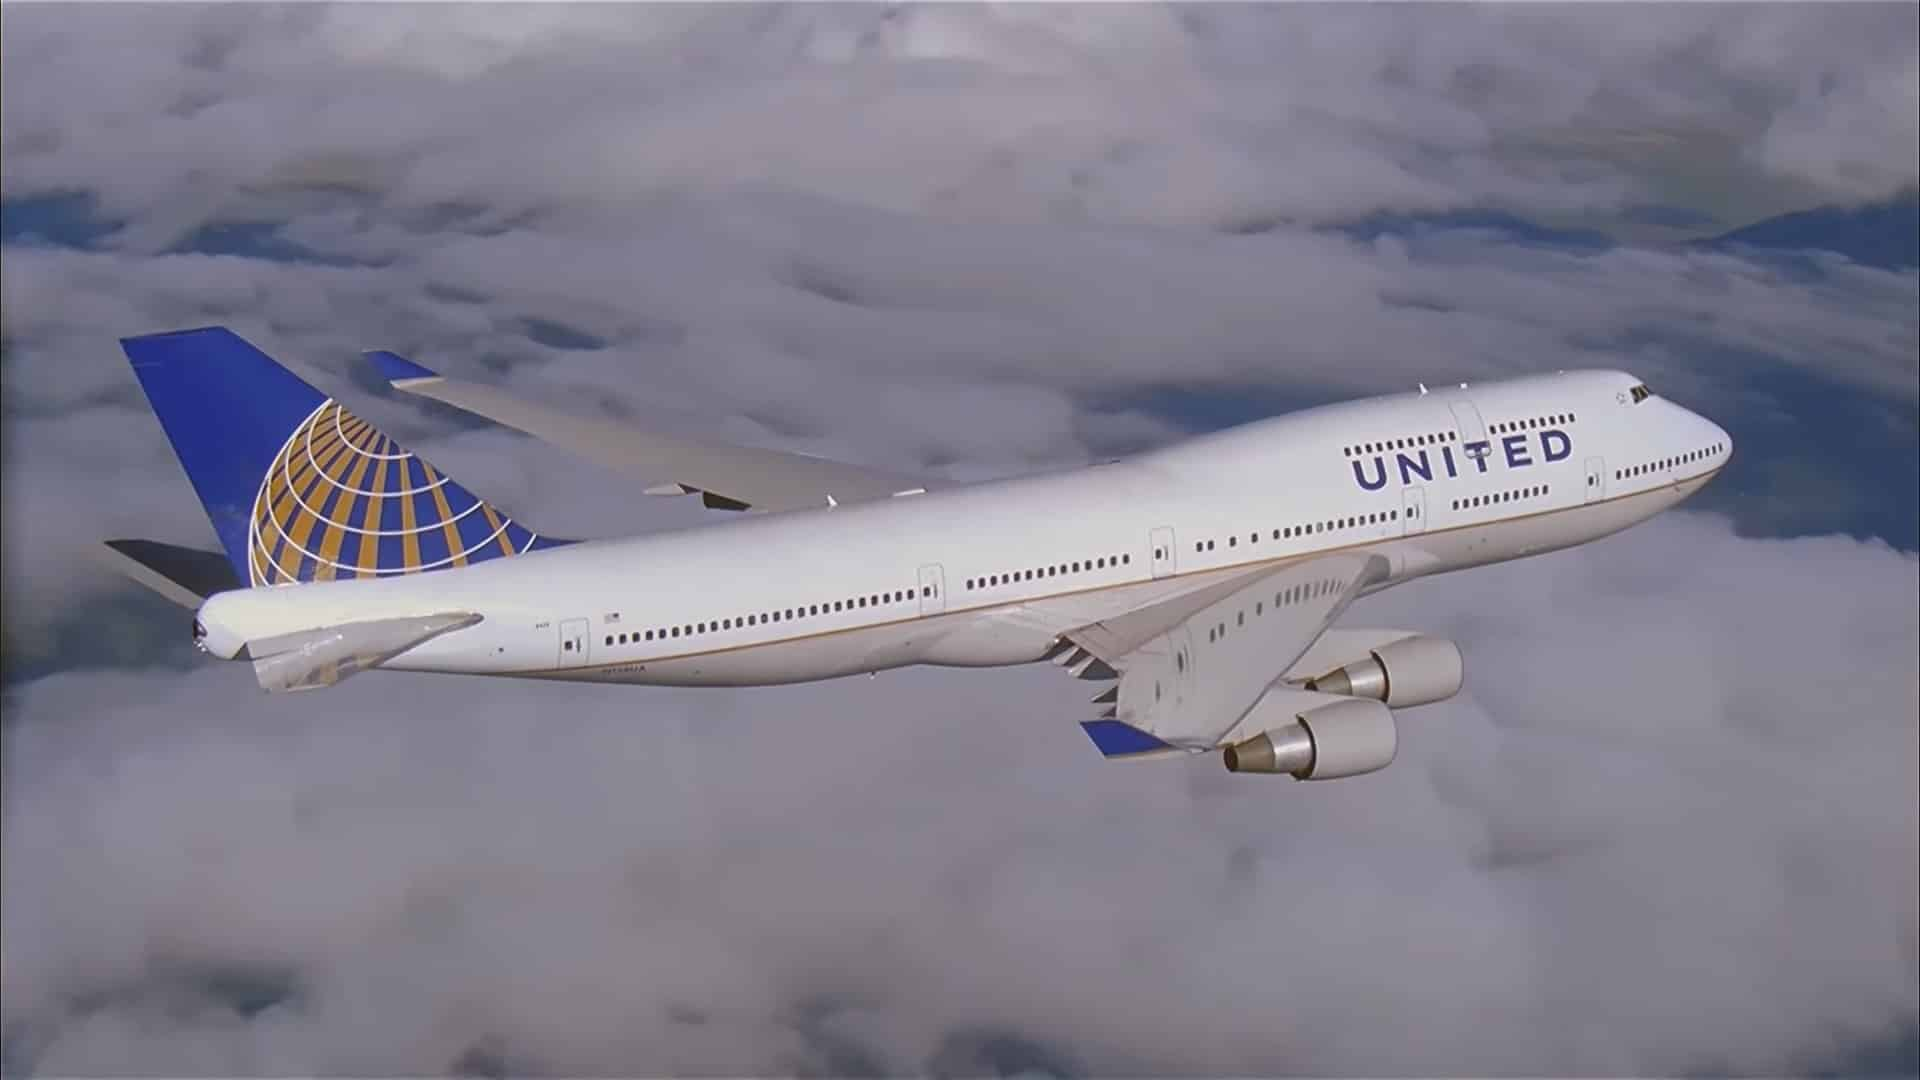 united-airlines-boeing-747-400-sky